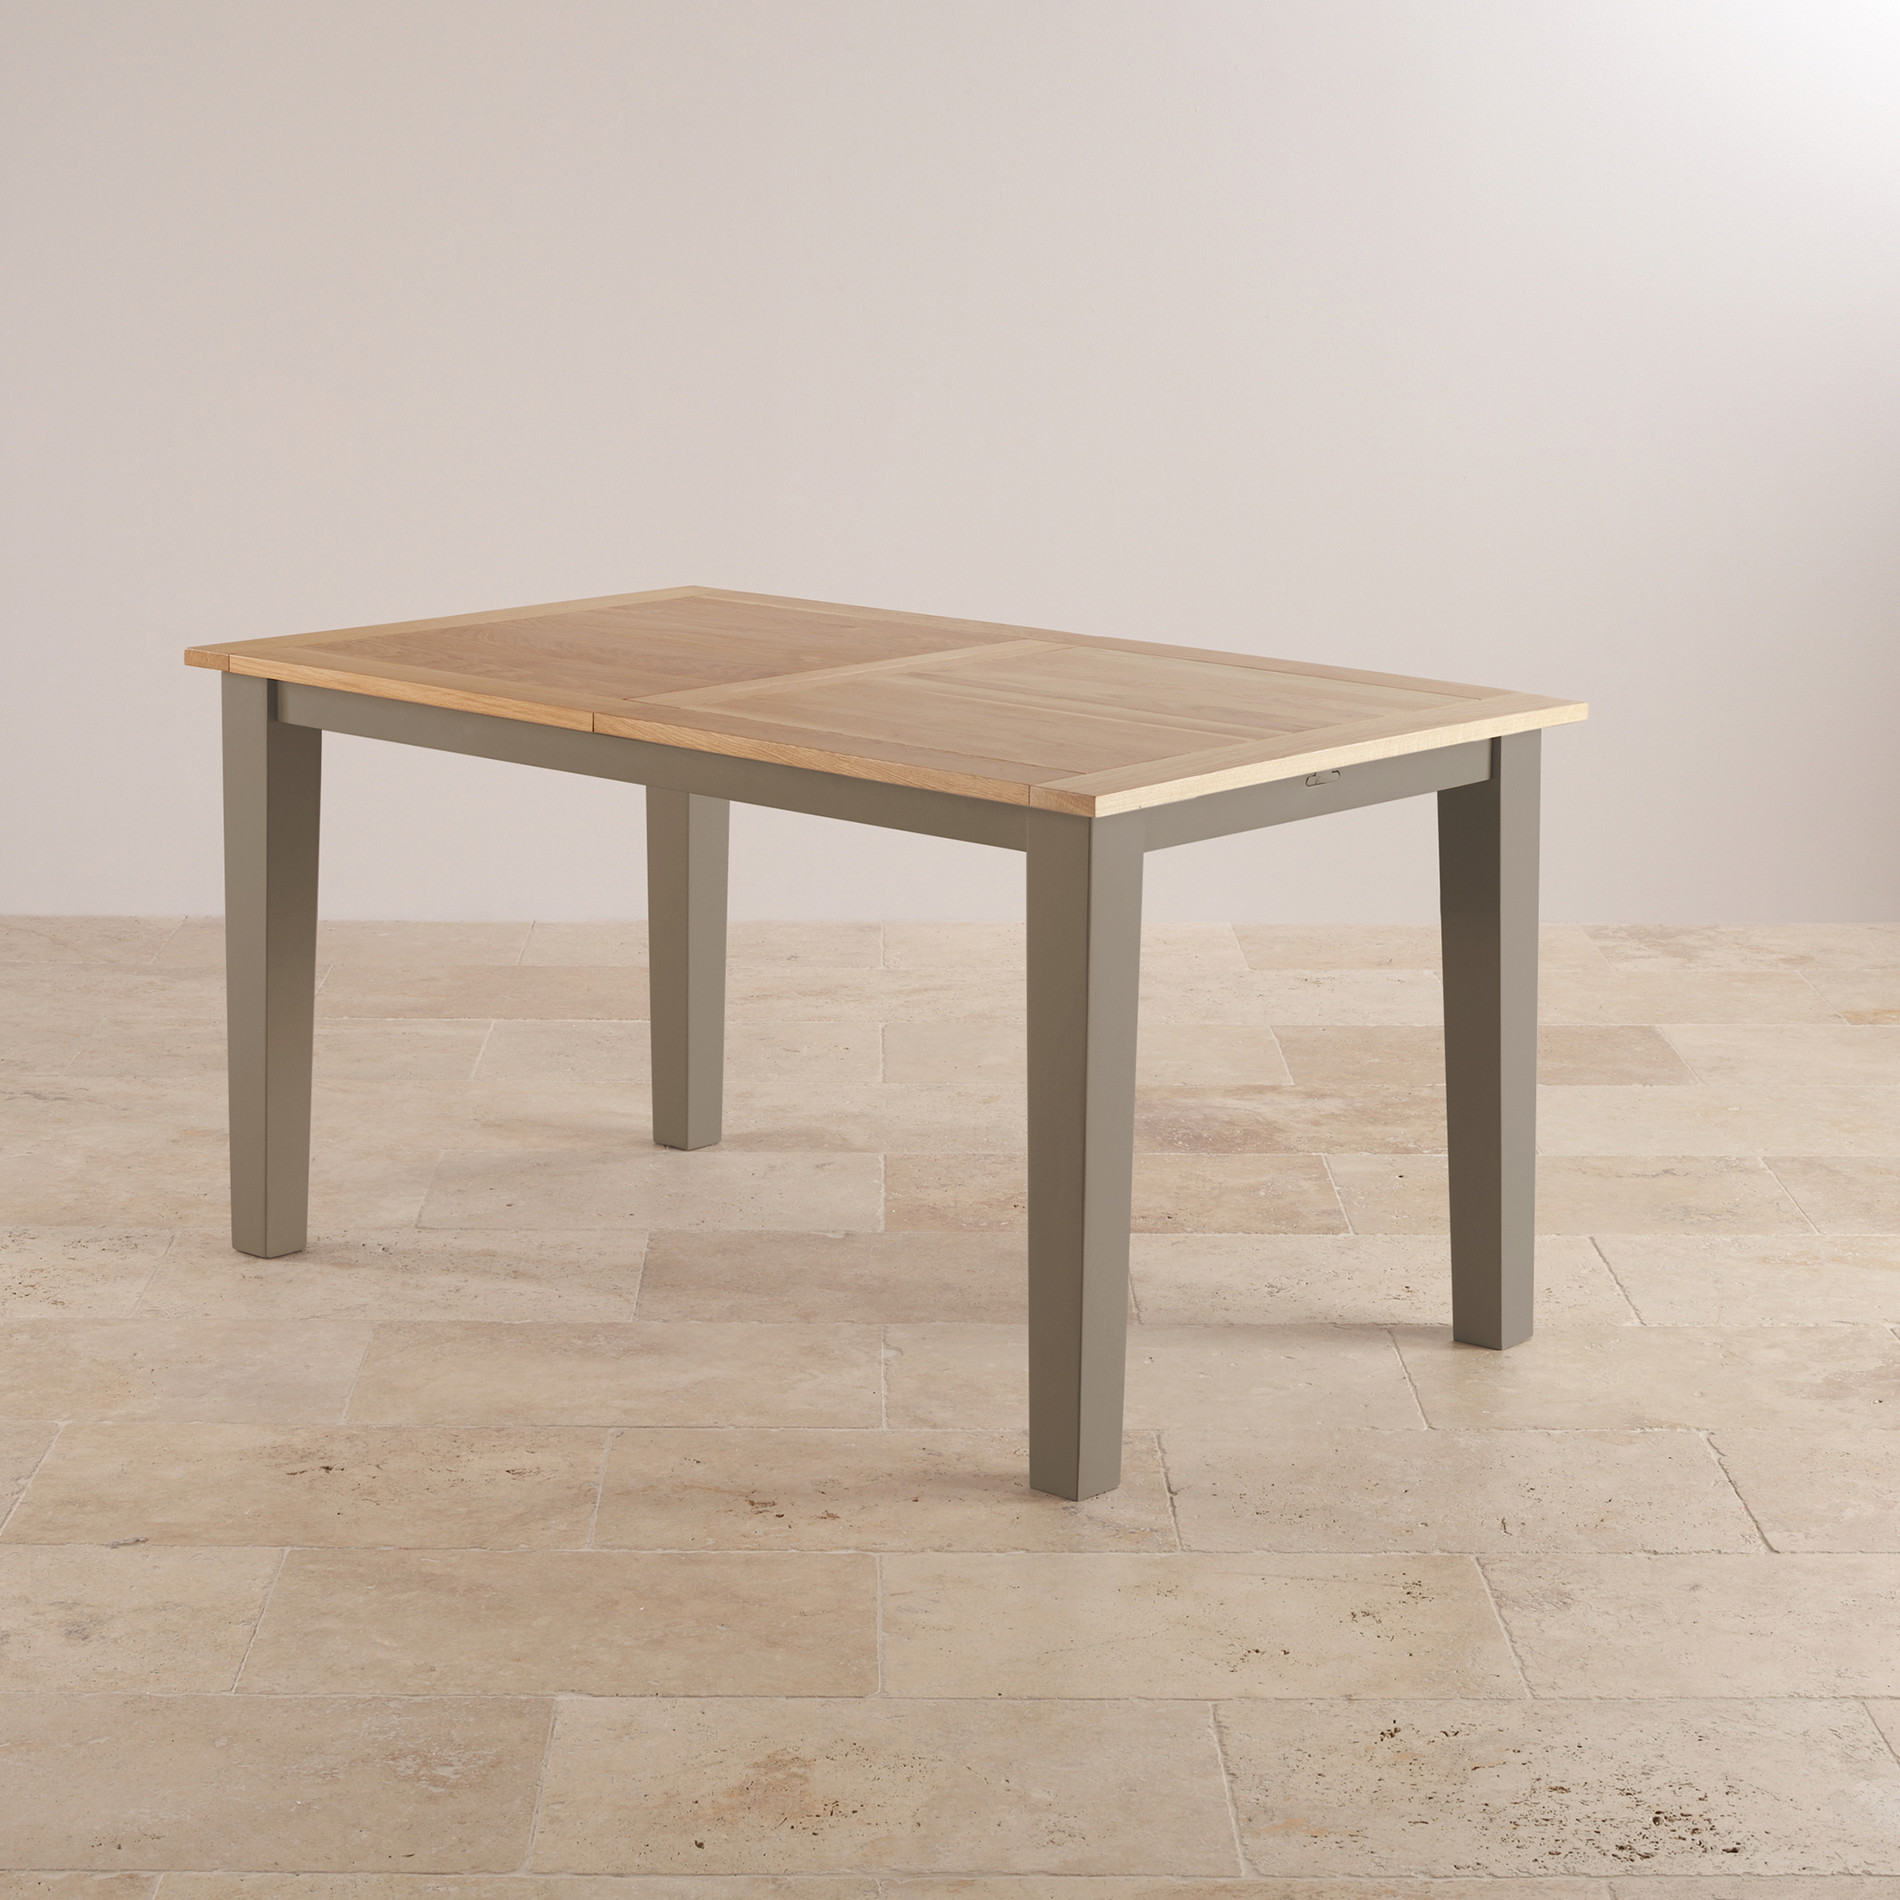 St ives 5ft extending dining table in light grey painted oak for 5ft coffee tables